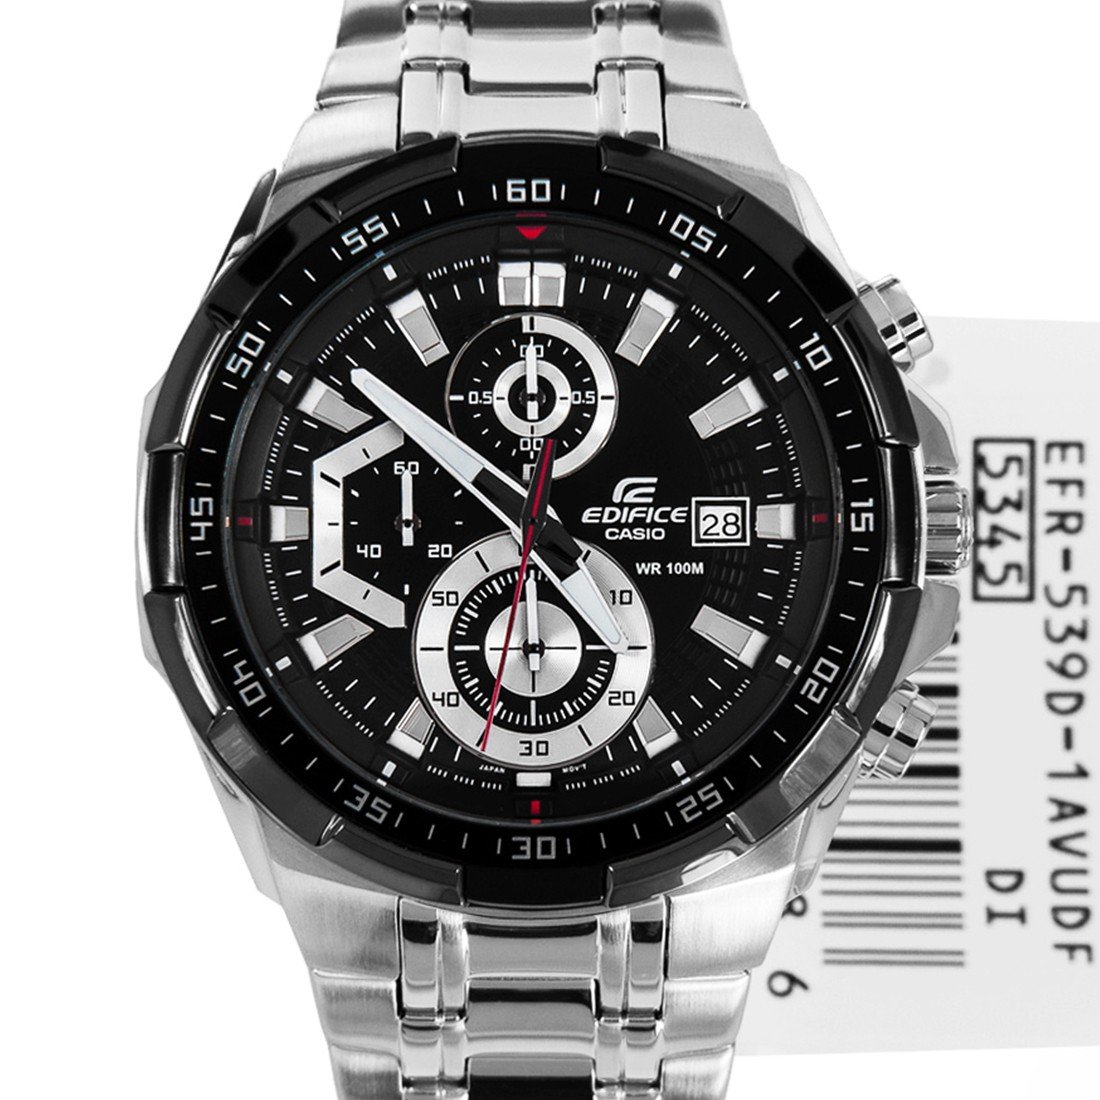 Casio Edifice EFR-539D-1AV Chronograph Stainless Steel Quartz Color Black